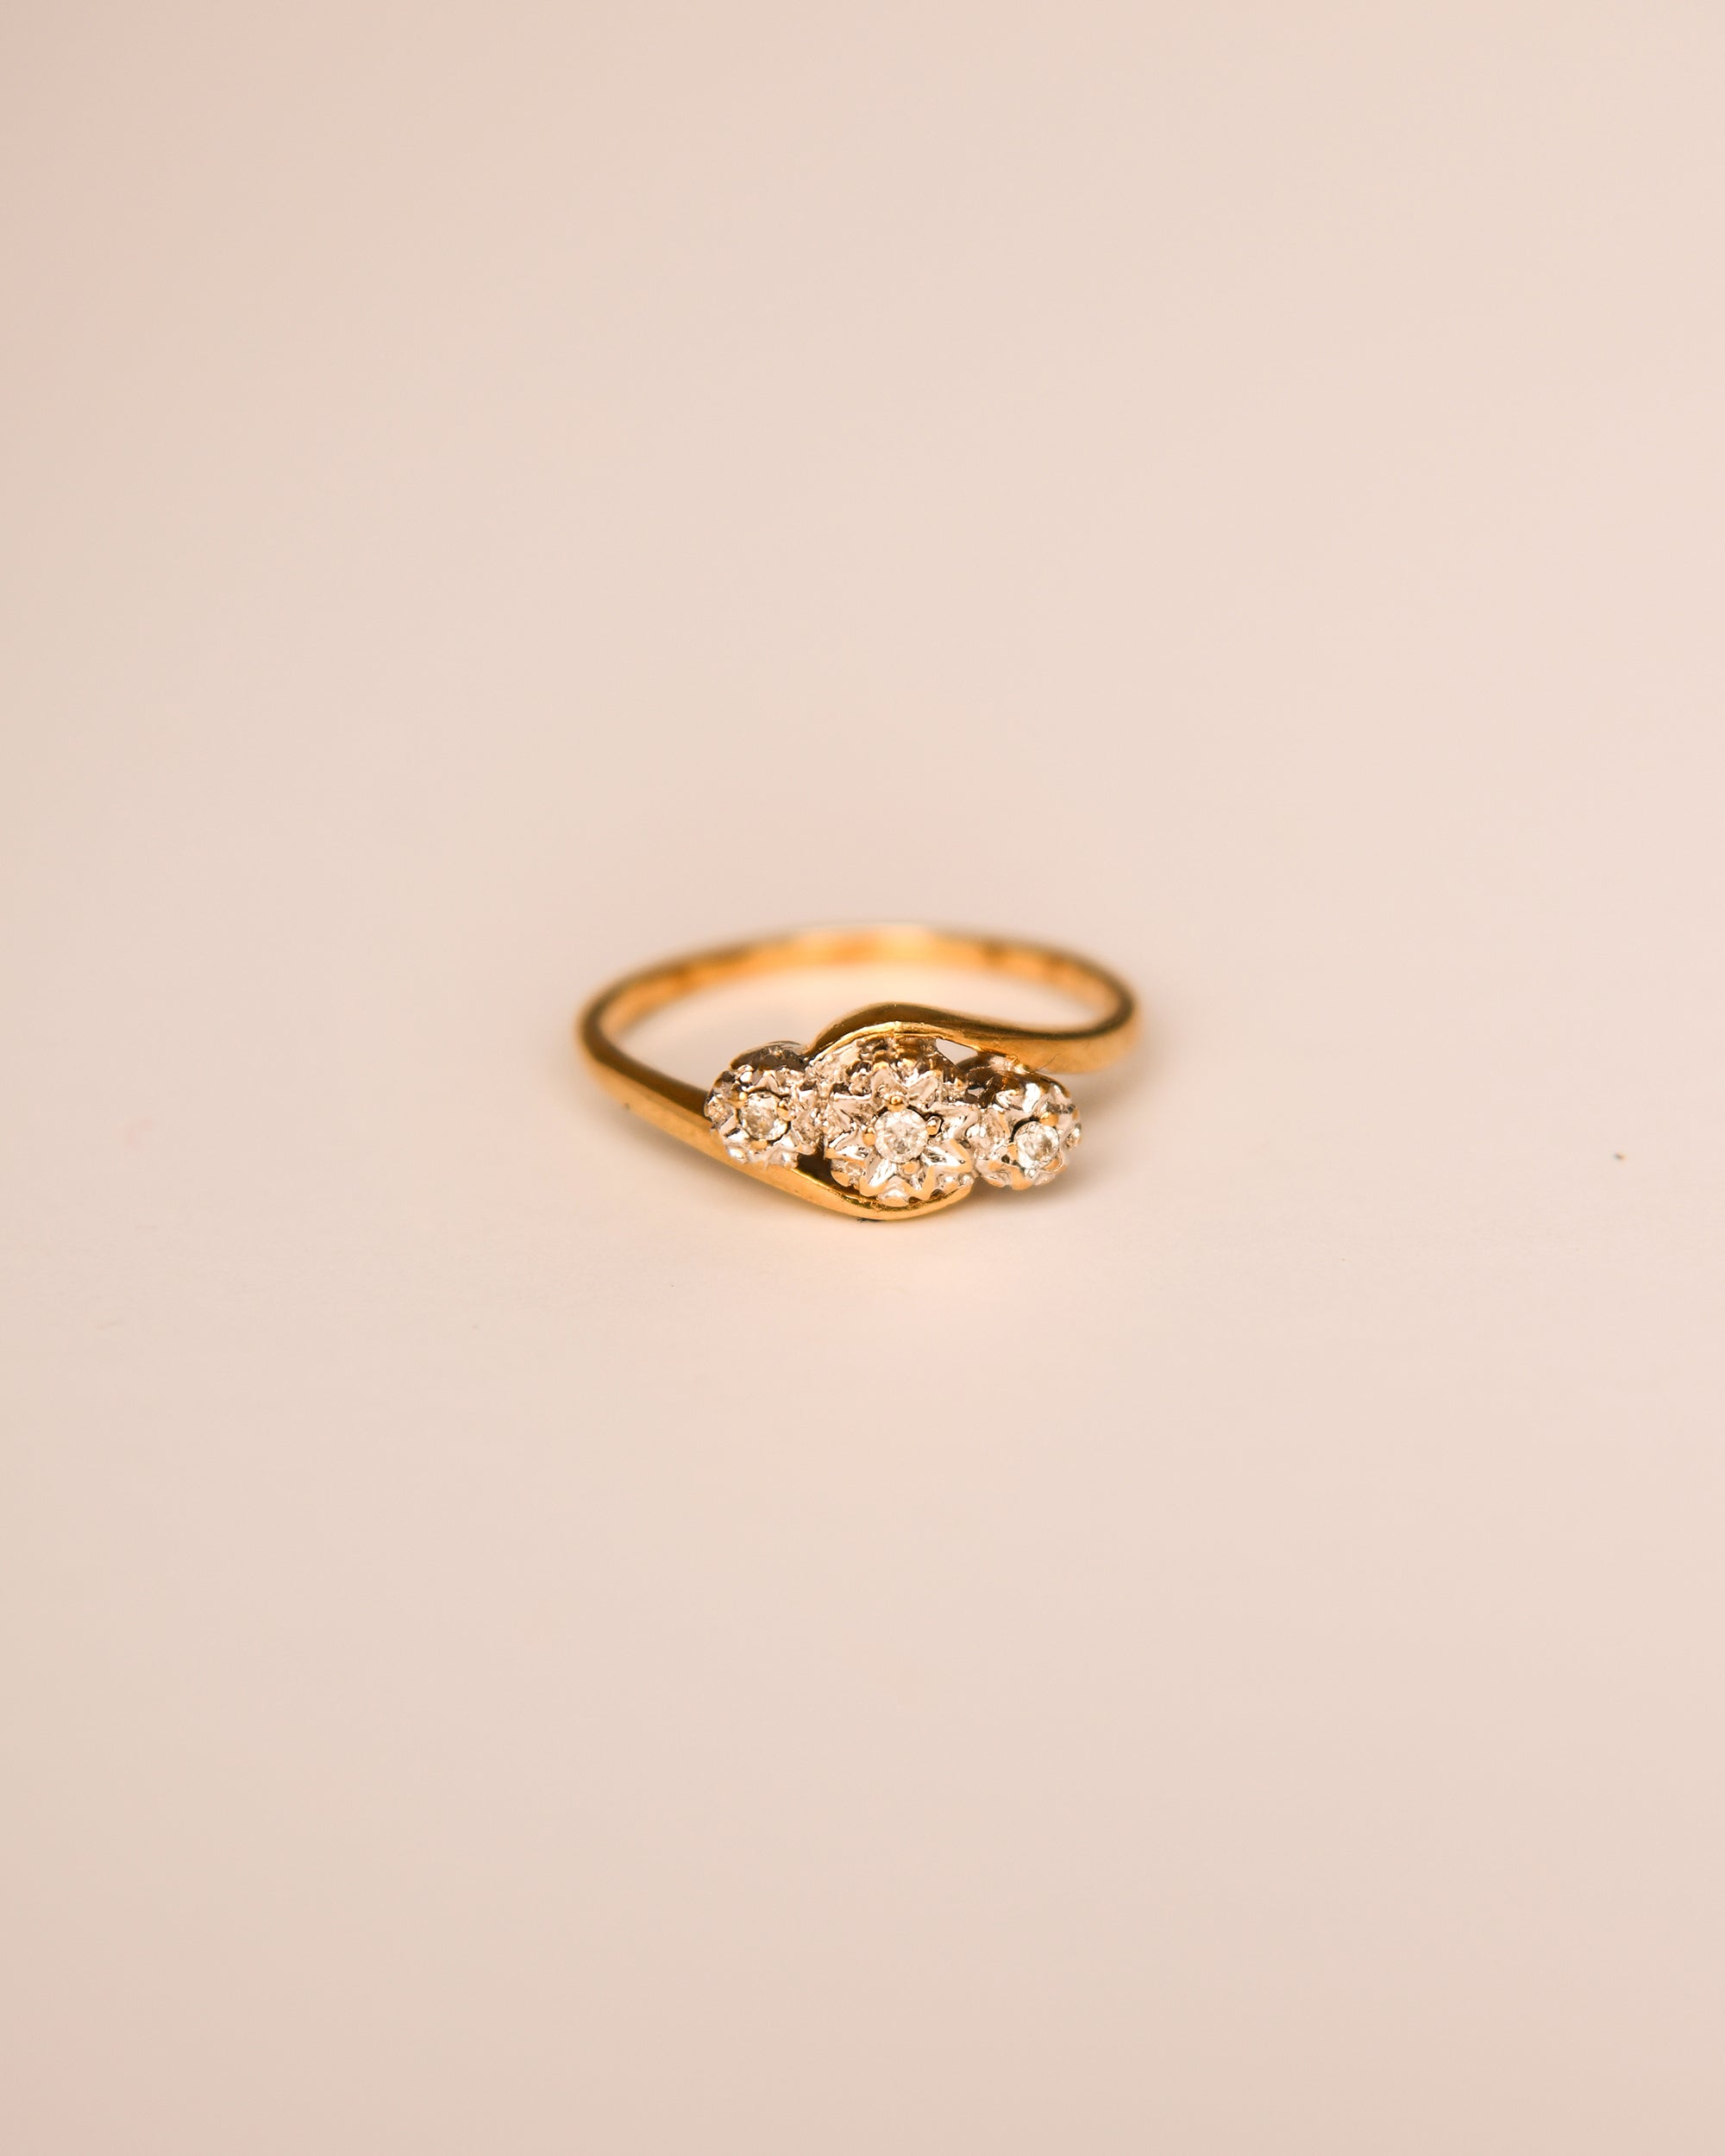 Image of Émilie 9ct Gold Vintage Diamond Ring